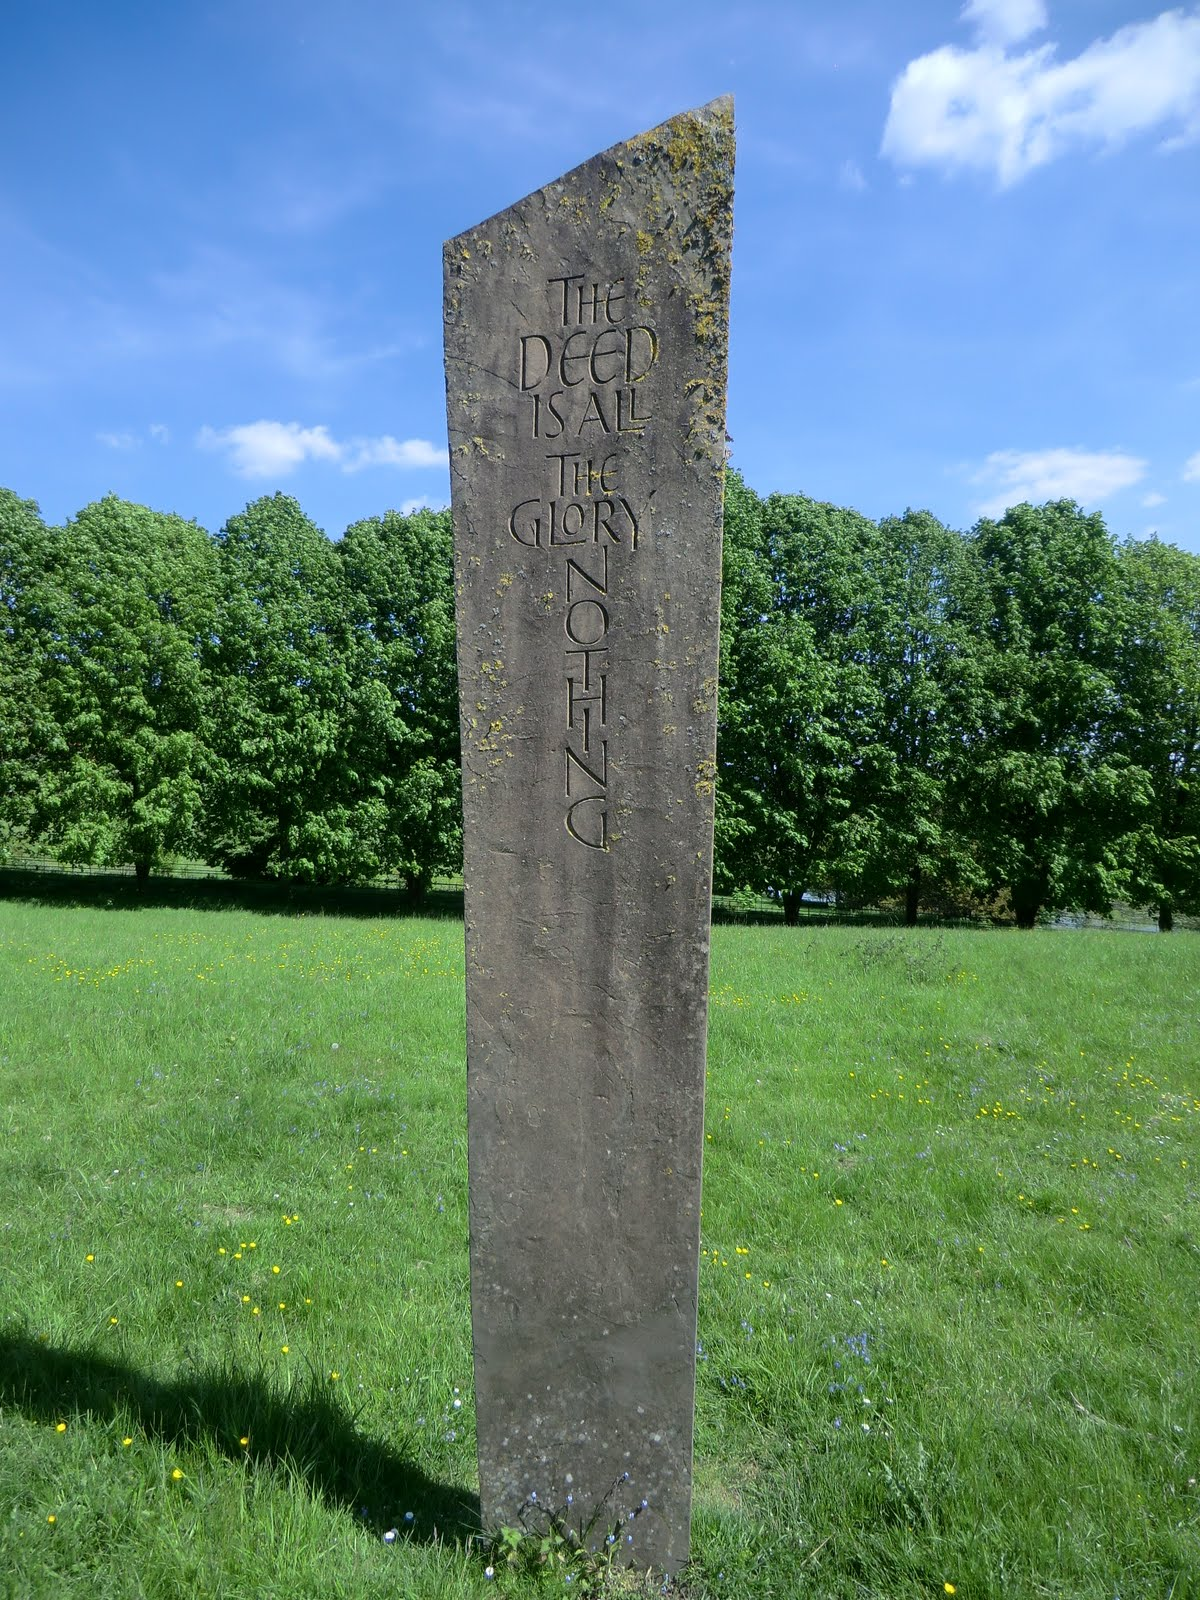 CIMG6800 Stone 9 (quotation from Goethe's Faust)